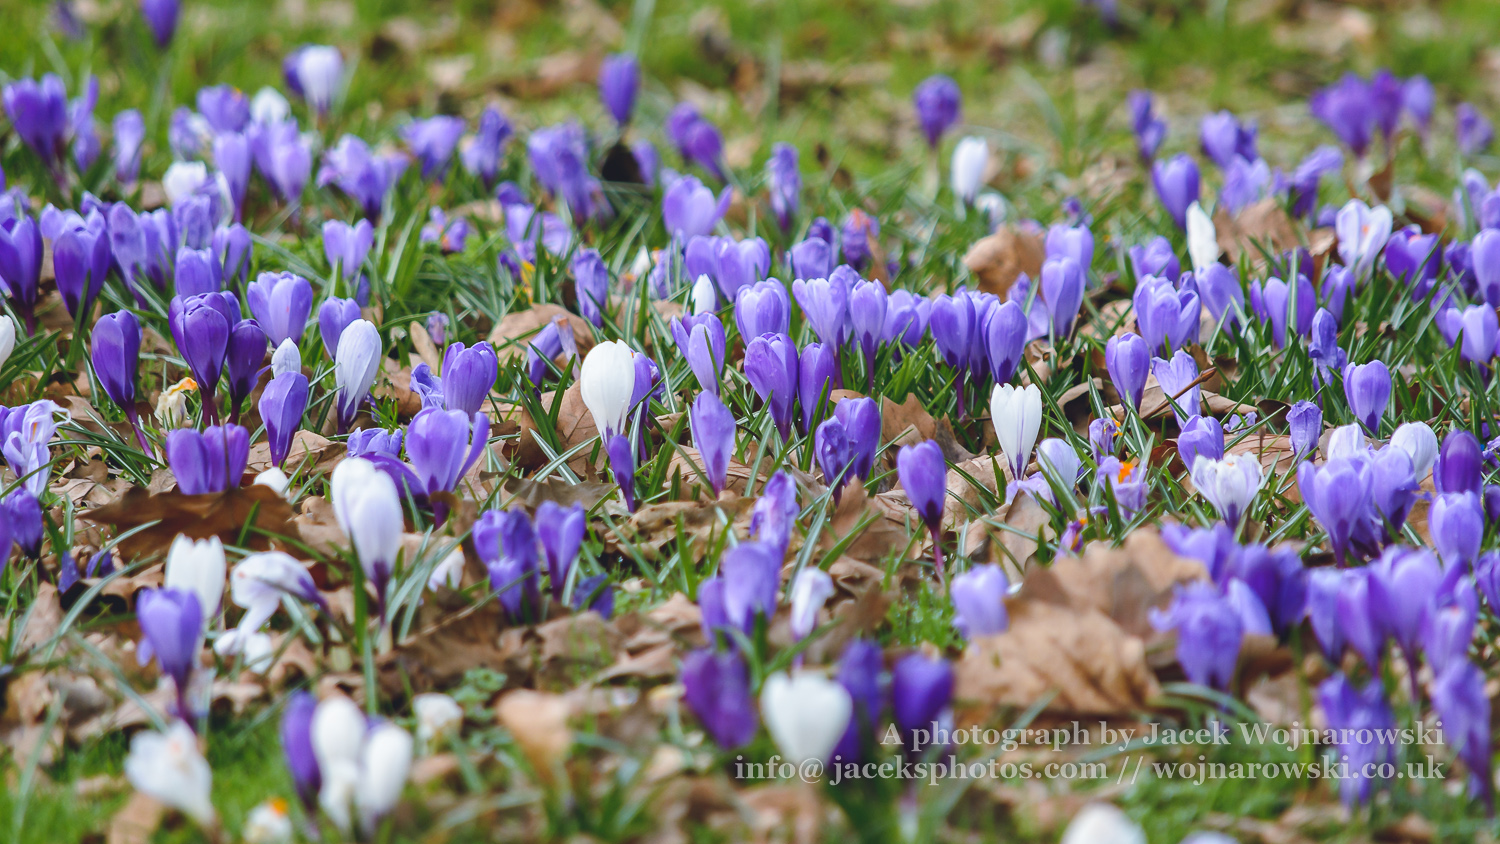 Springs flowers c nature shots springs flowers c carpet of the spring flowers in public park in gloucester england captured in march 2018 shallow depth of field mightylinksfo